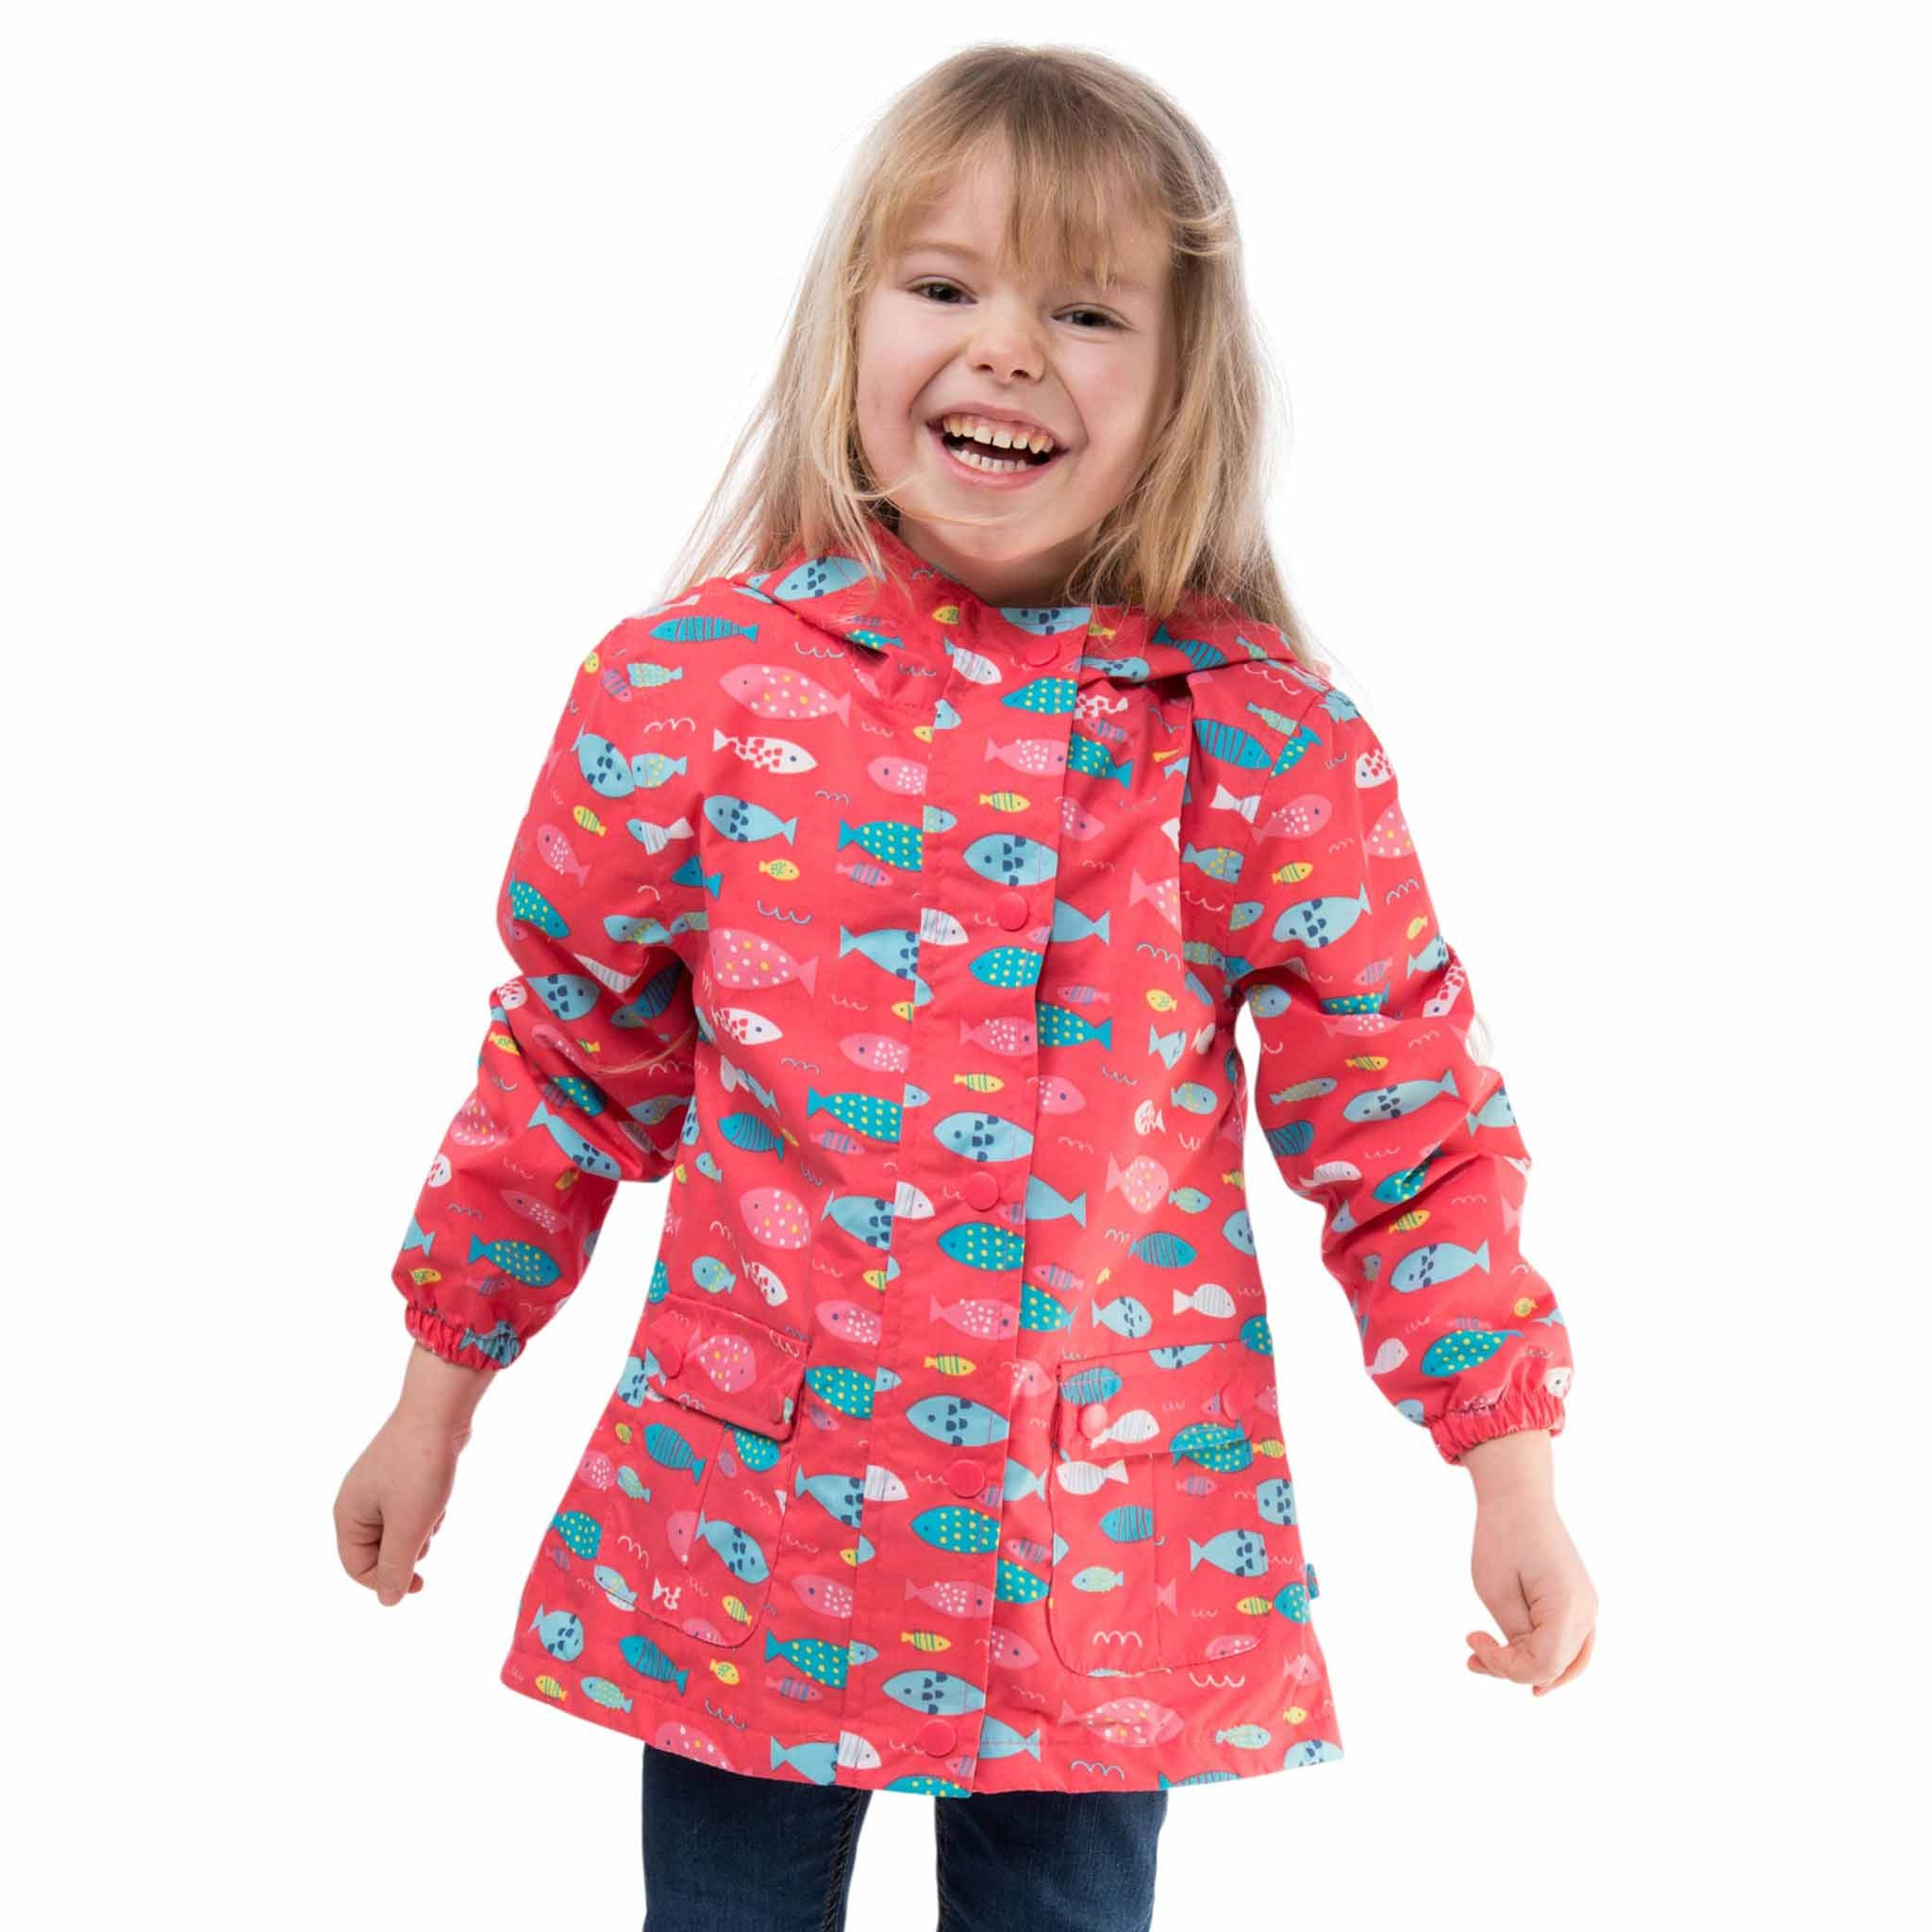 Carrie Girls Waterproof Hooded Jacket, in Rose Pink Fish Print, Modelled Front View | Lighthouse